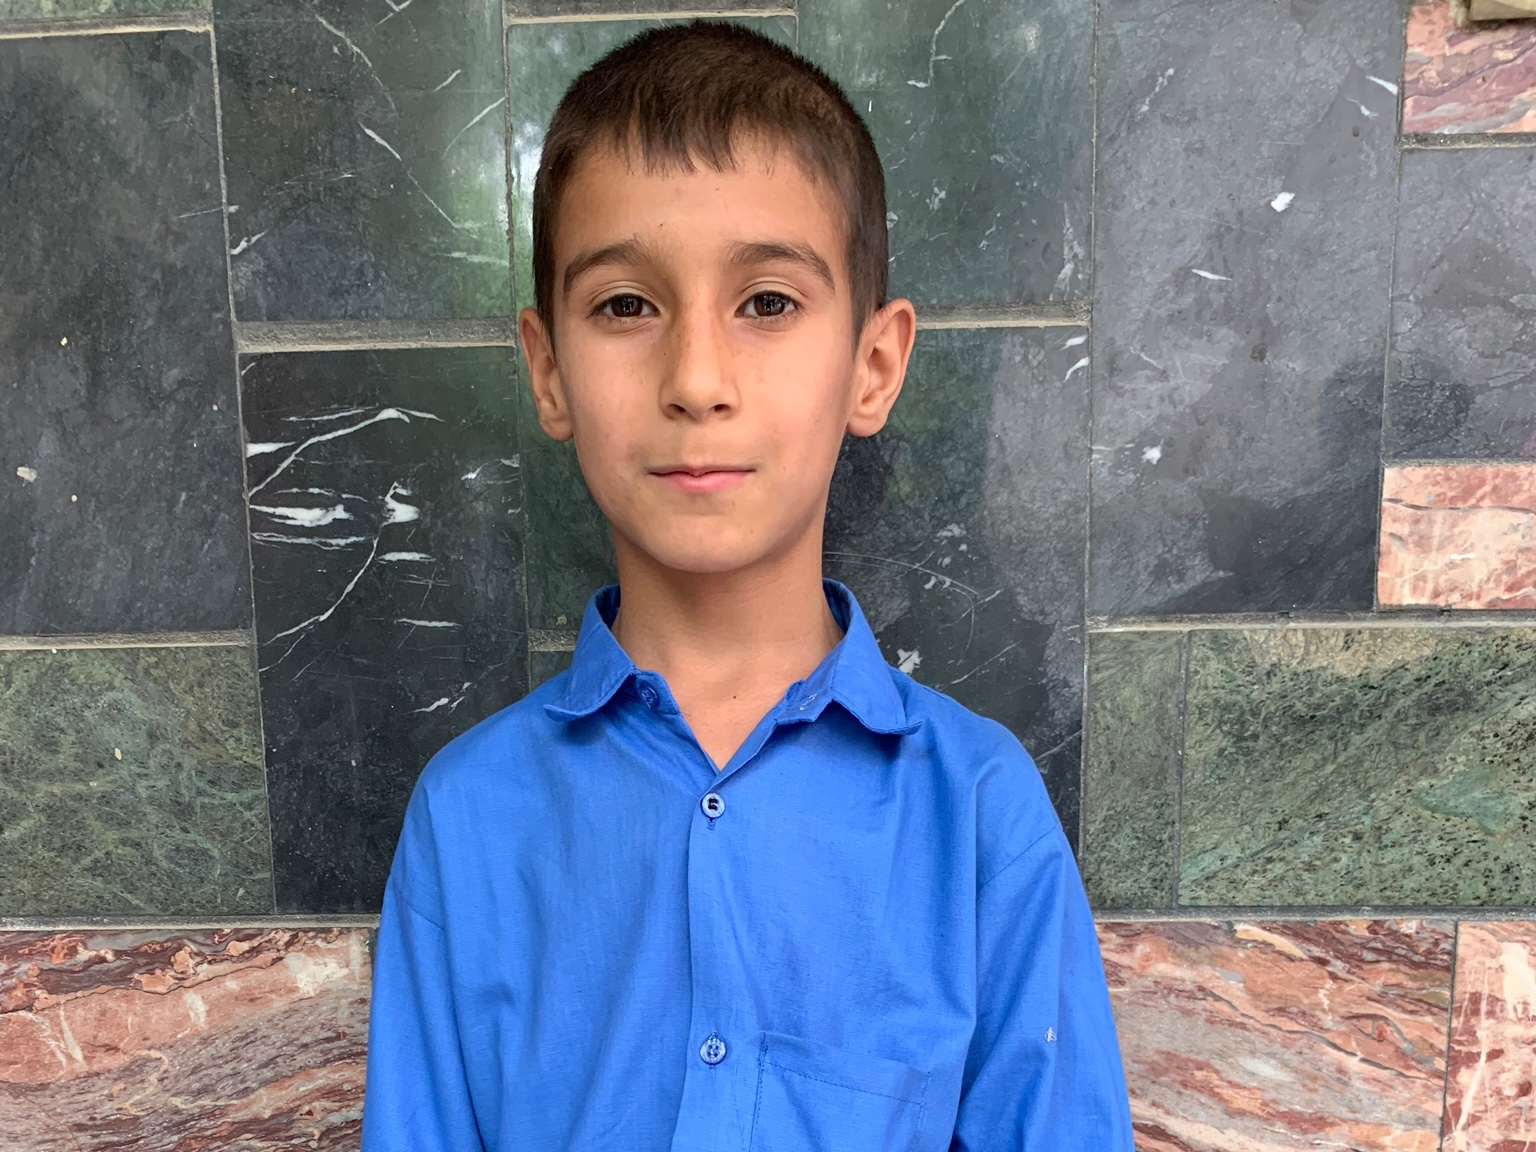 Seyd Riam, Age 9 - Seyd Riam has 5 siblings. His mother does not have work at this time and his father is a driver.BE SEYD RIAM'S PARTNER>